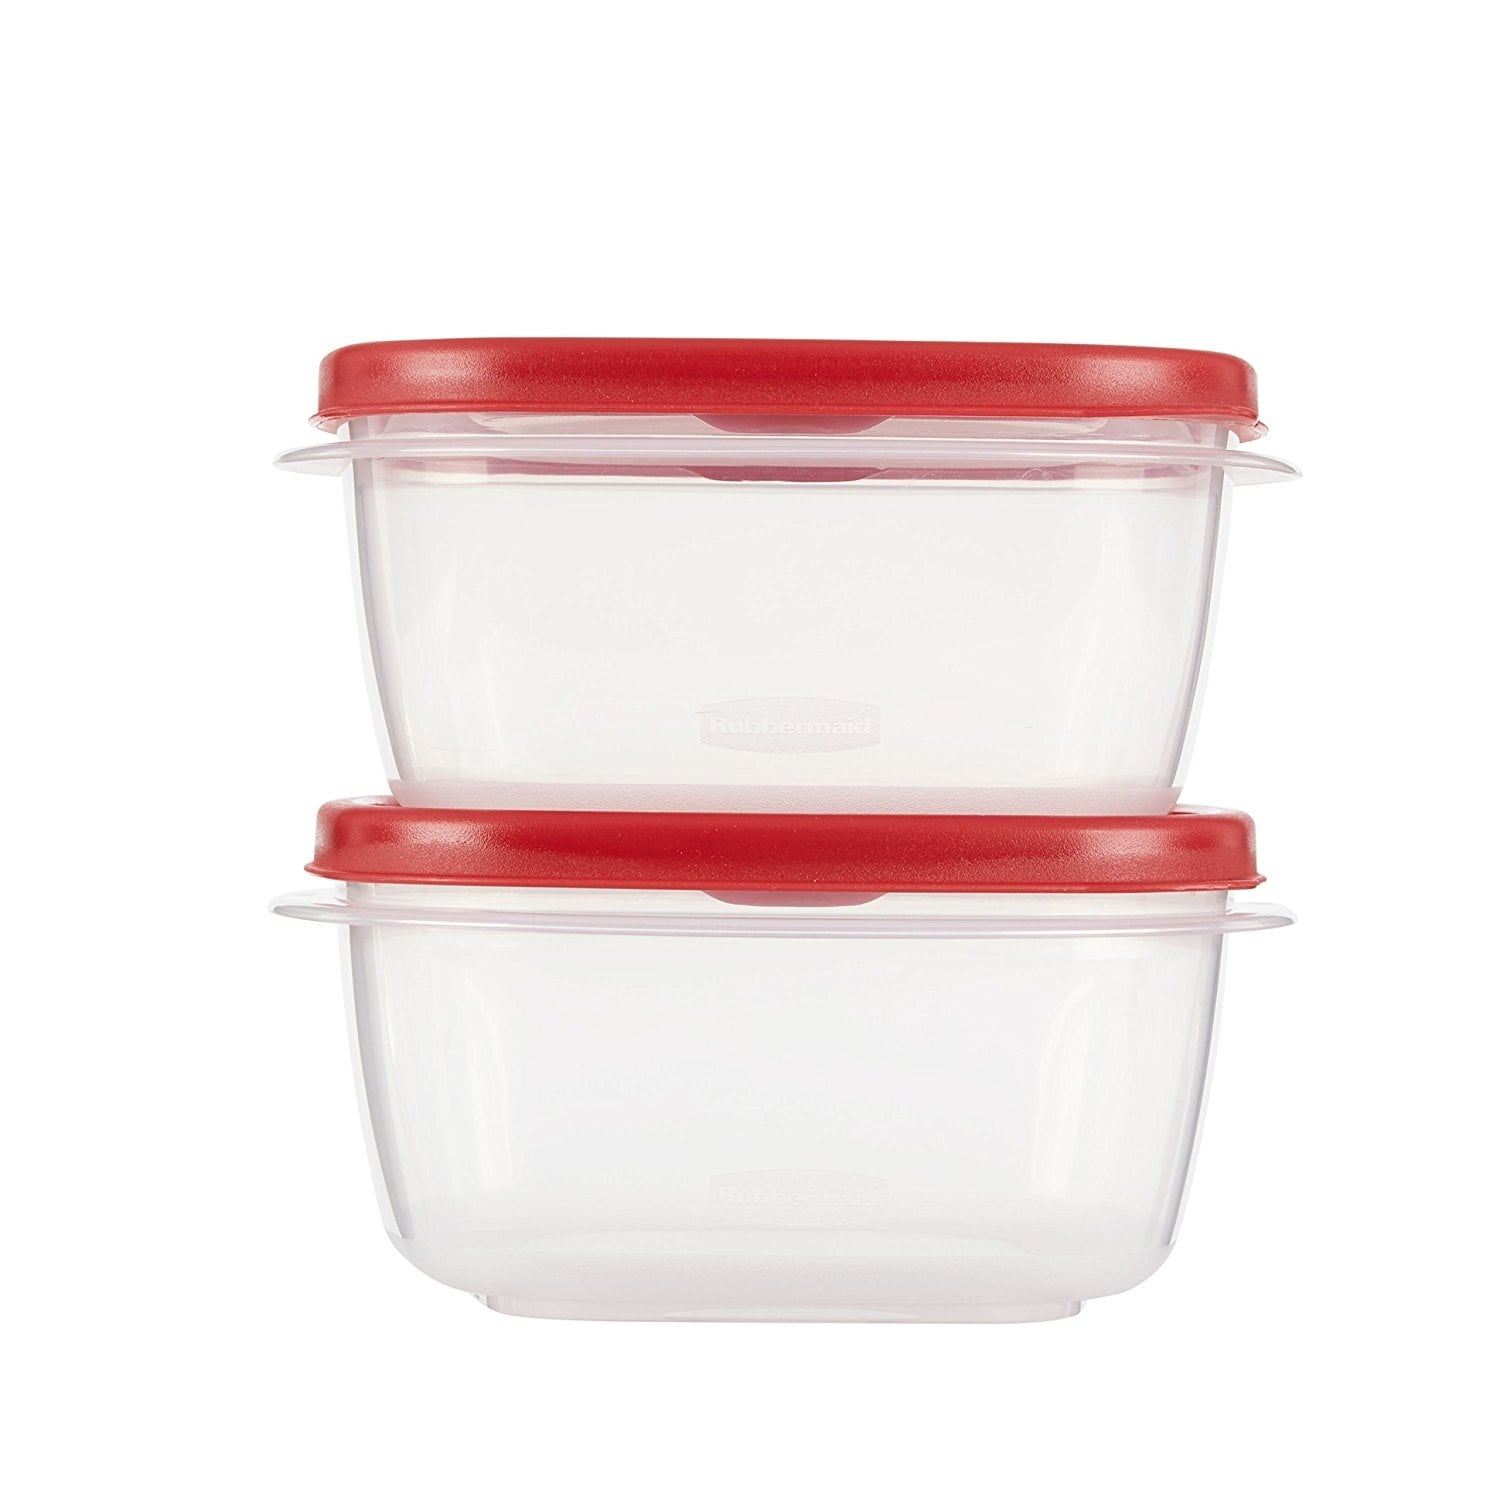 Rubbermaid Take Alongs Food Storage Container Square 5 Cup Value Pack of 4  Containers